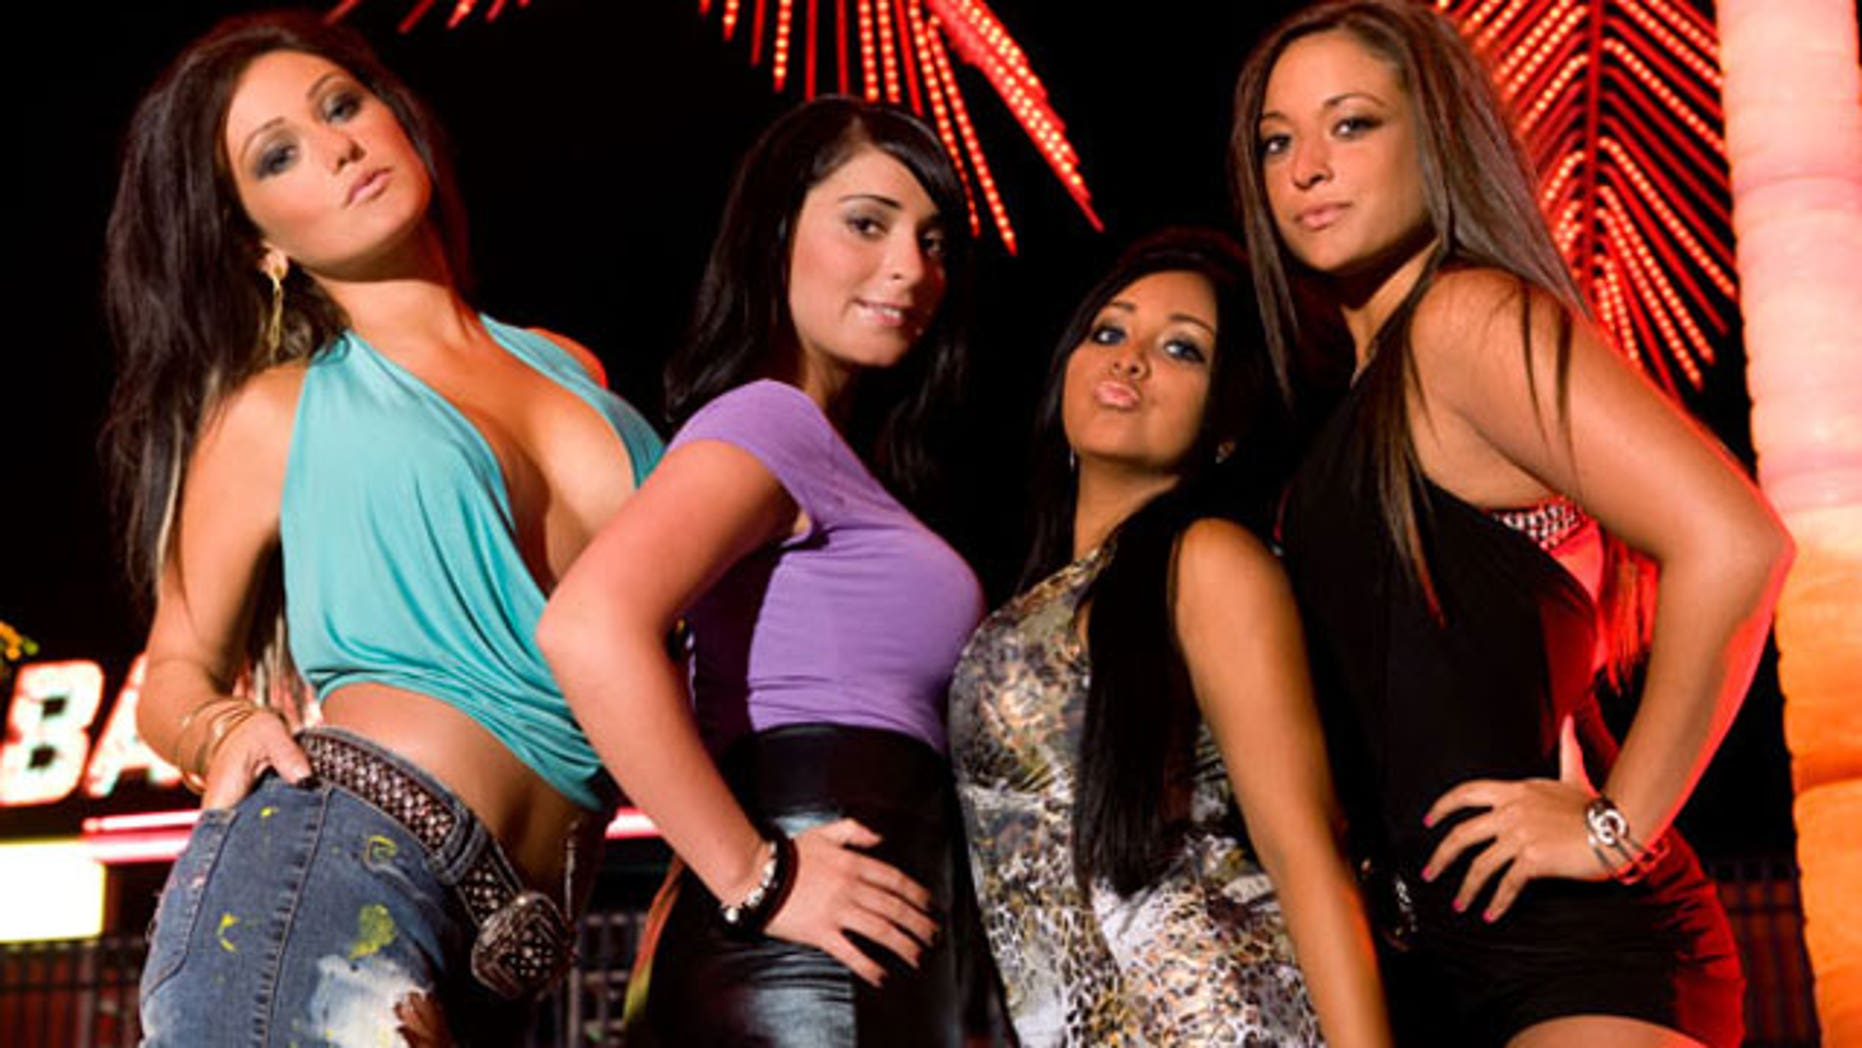 The ladies of the 'Jersey Shore' cast.